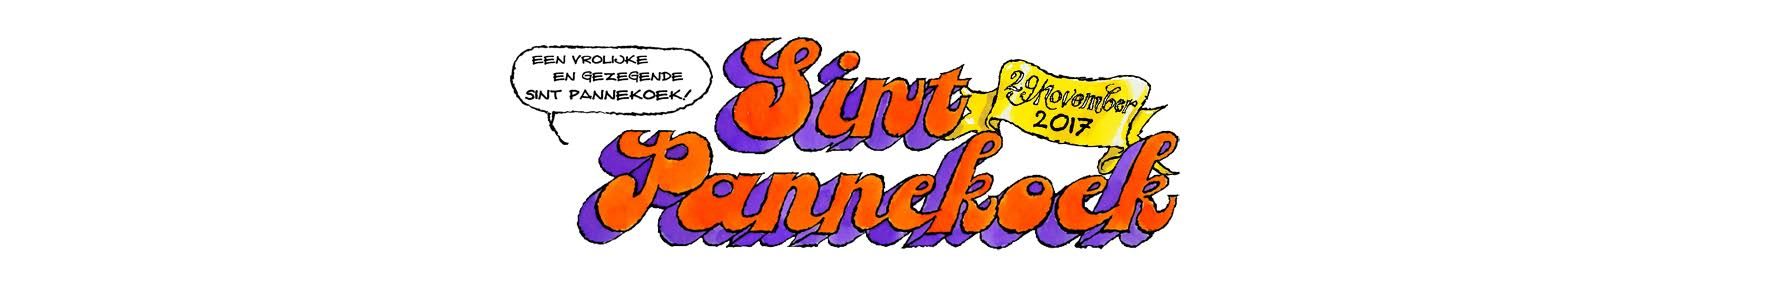 sint-pannekoek-header-website-2